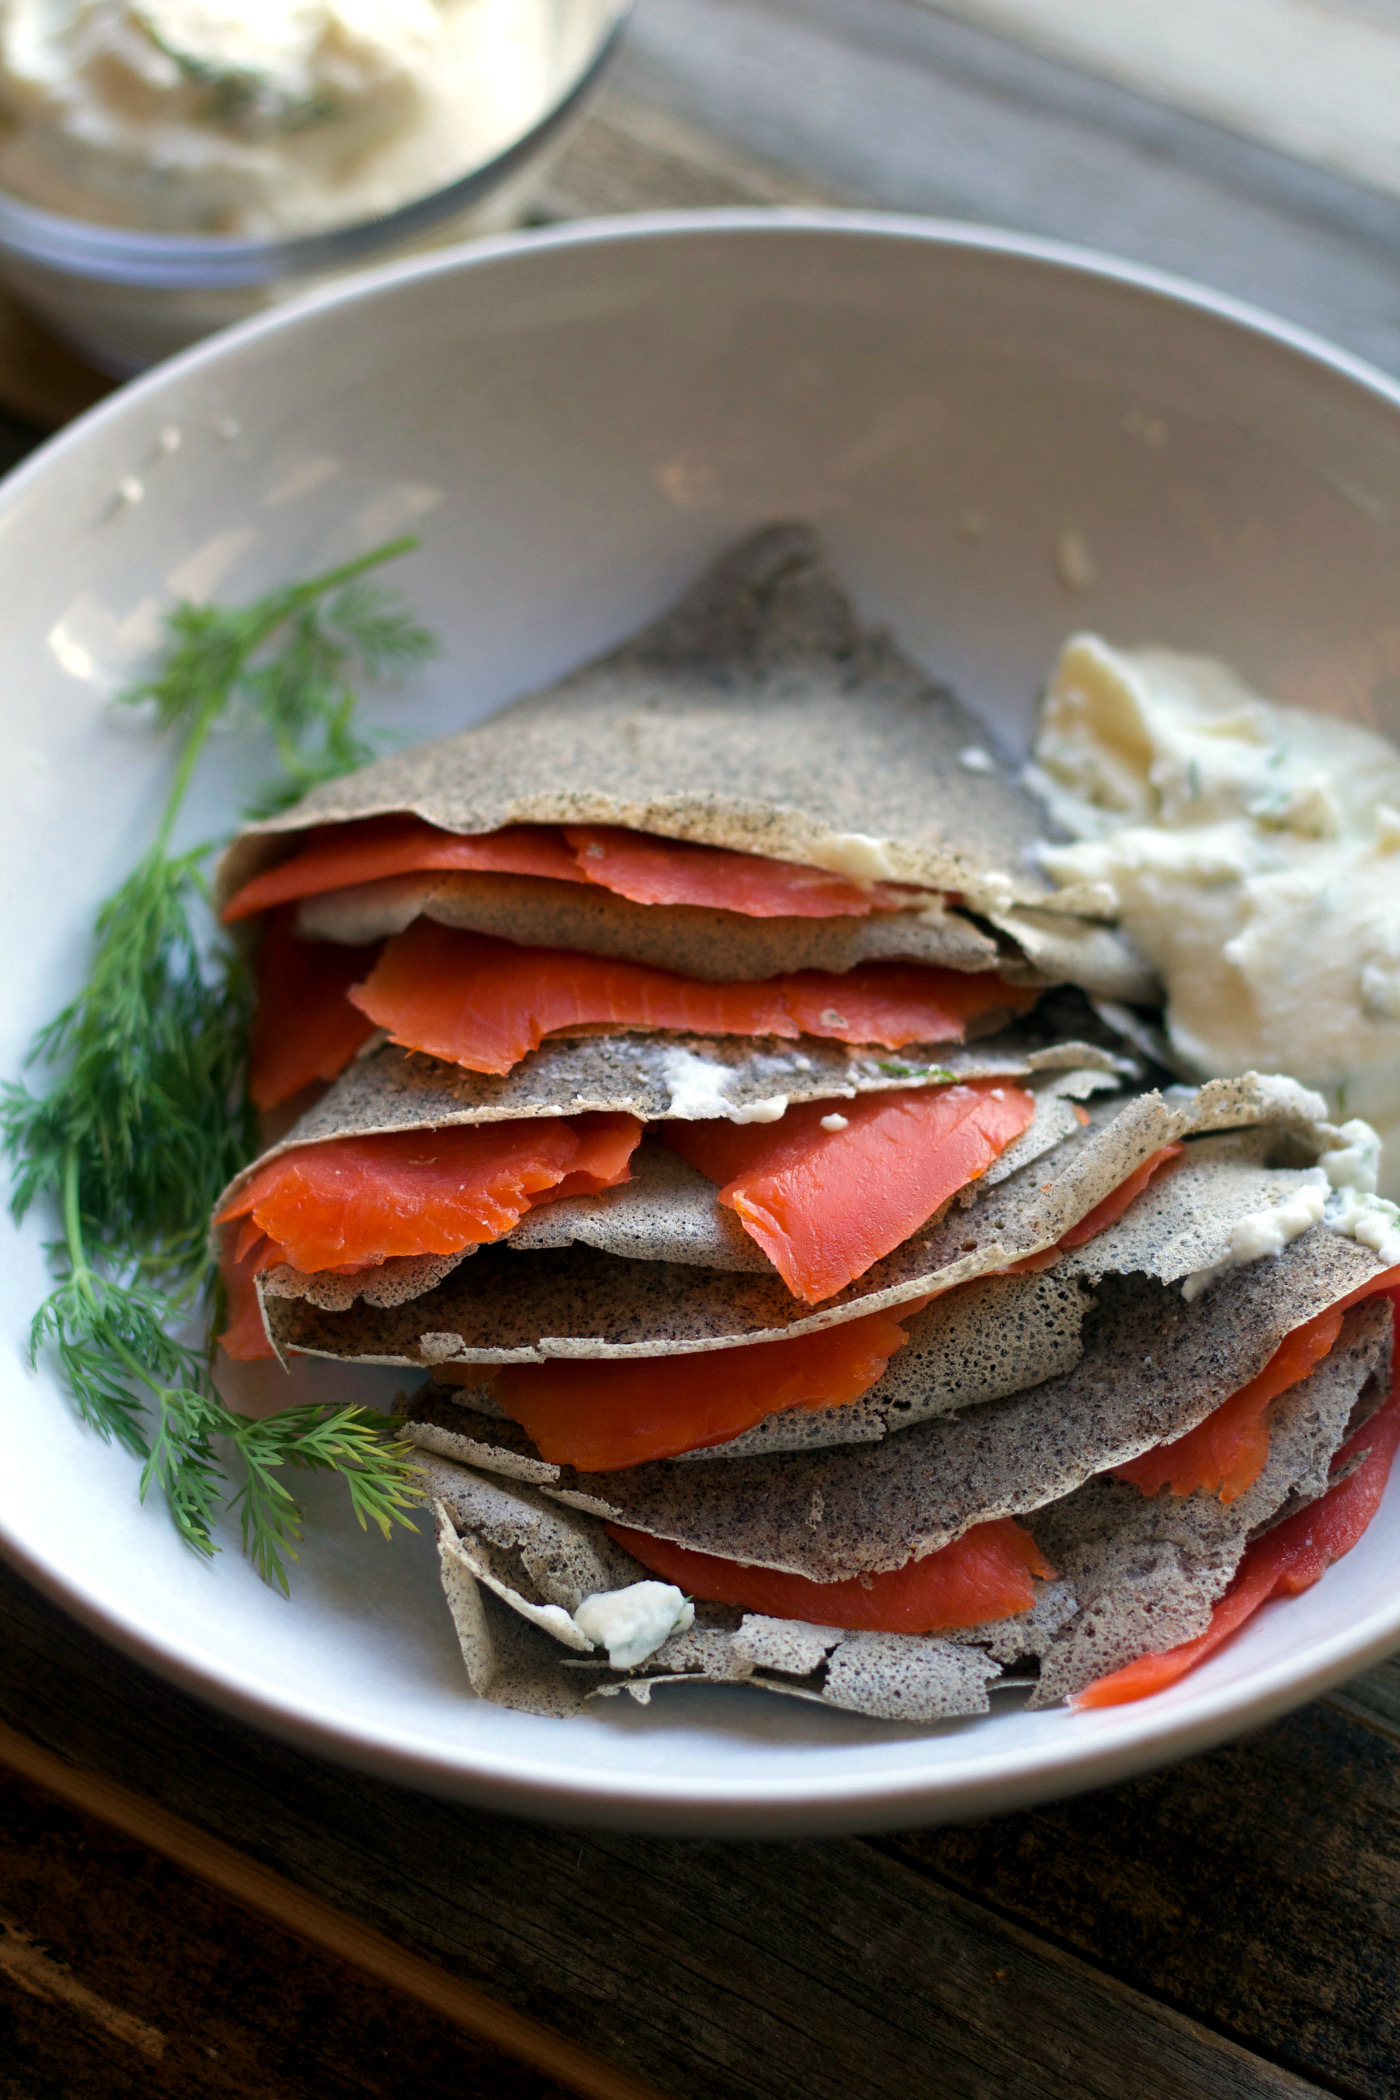 Gluten Free Buckwheat Crepes with Smoked Salmon and Lemon Herbed Ricotta